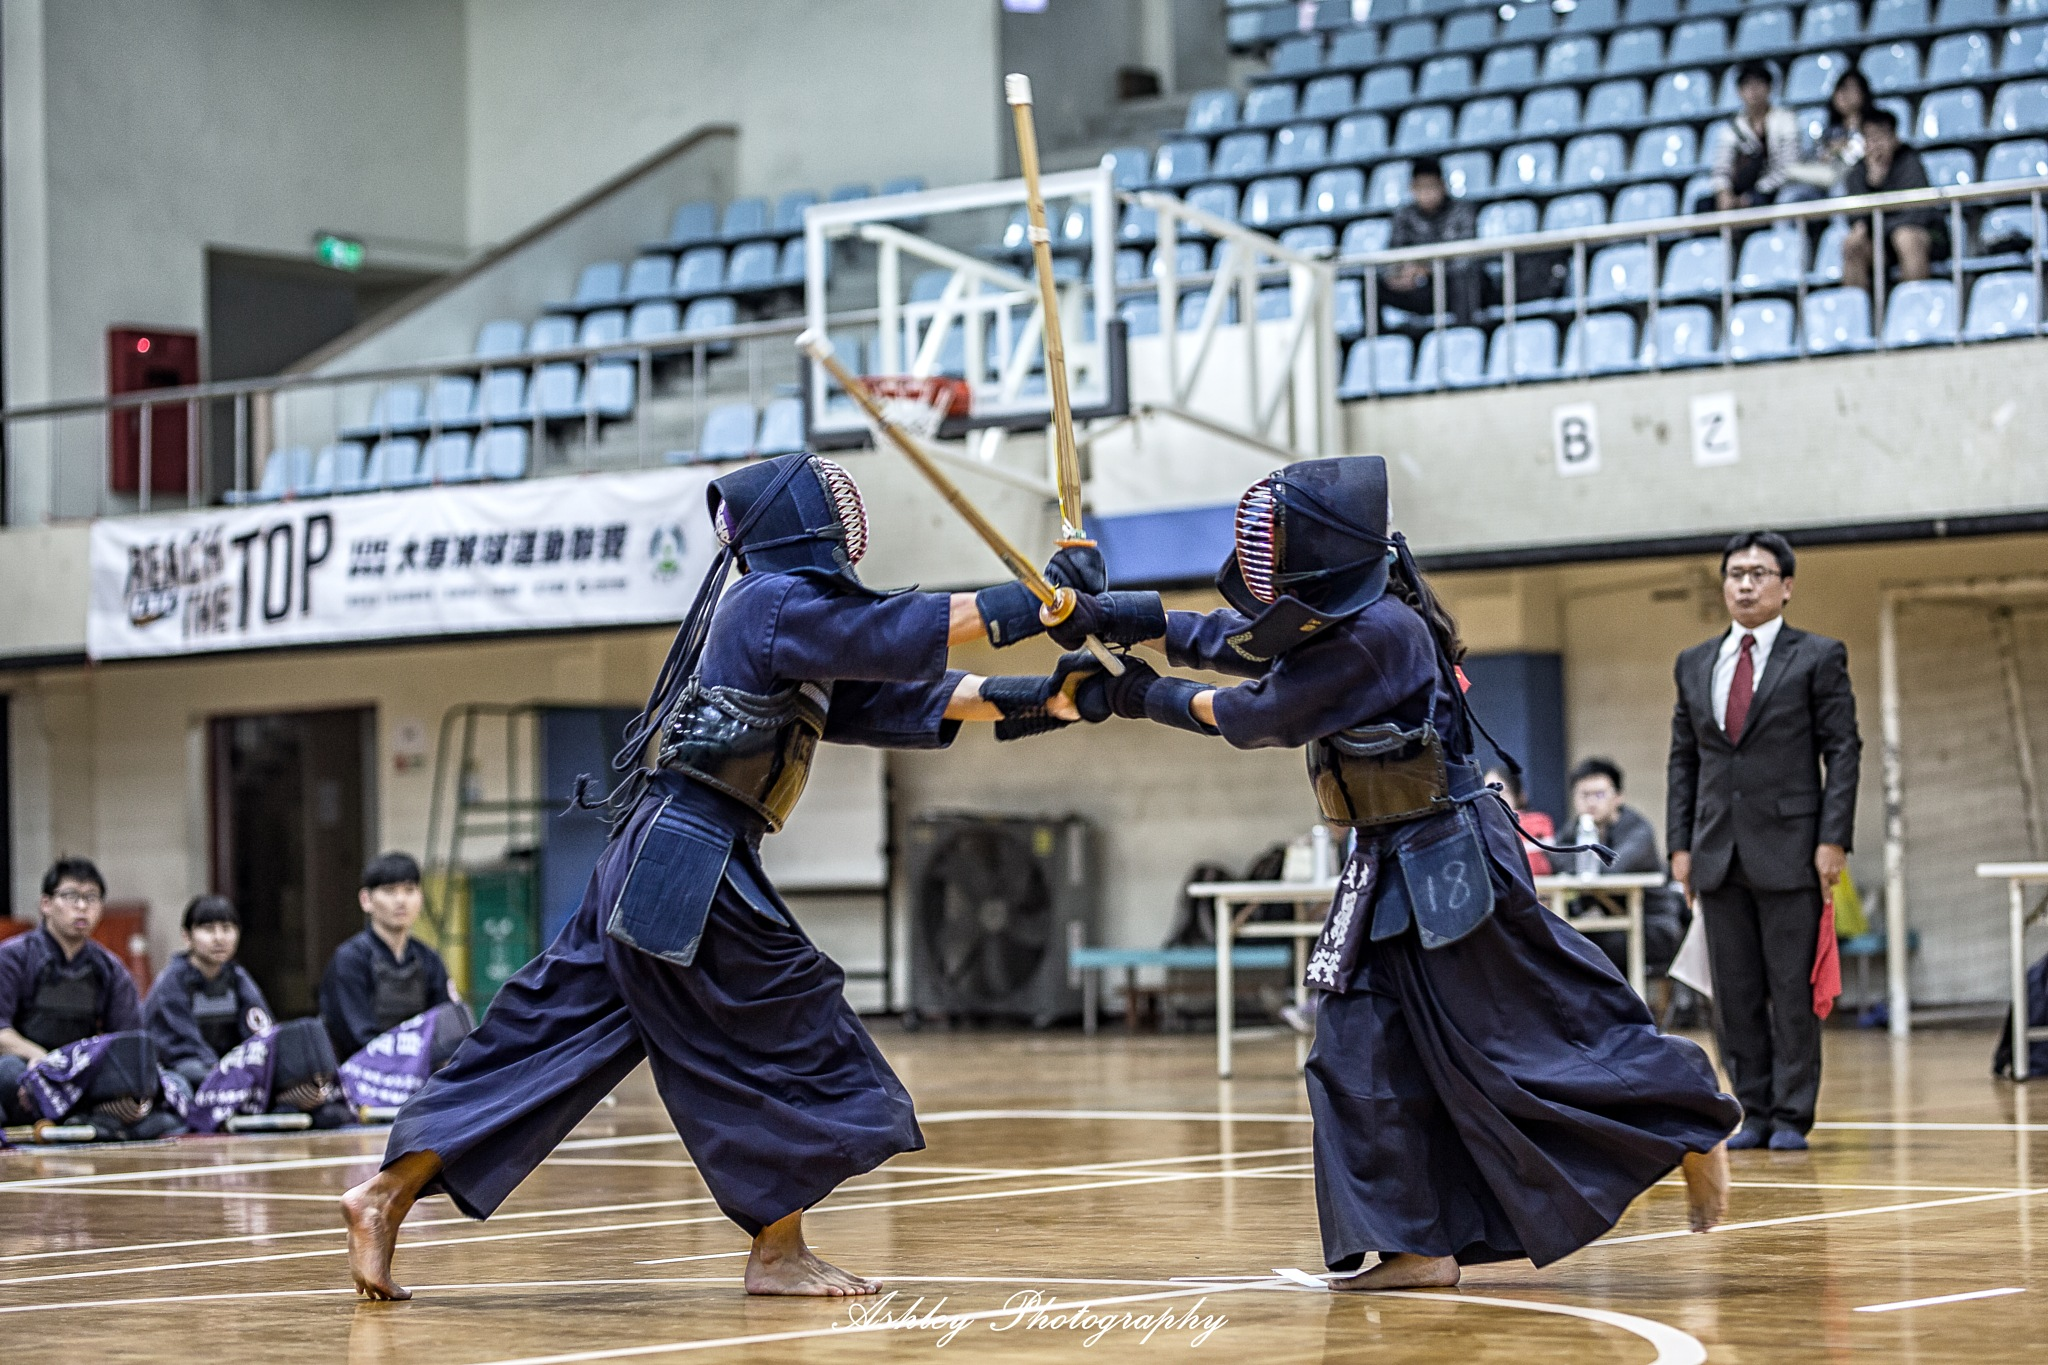 Kendo by Ashley Lee